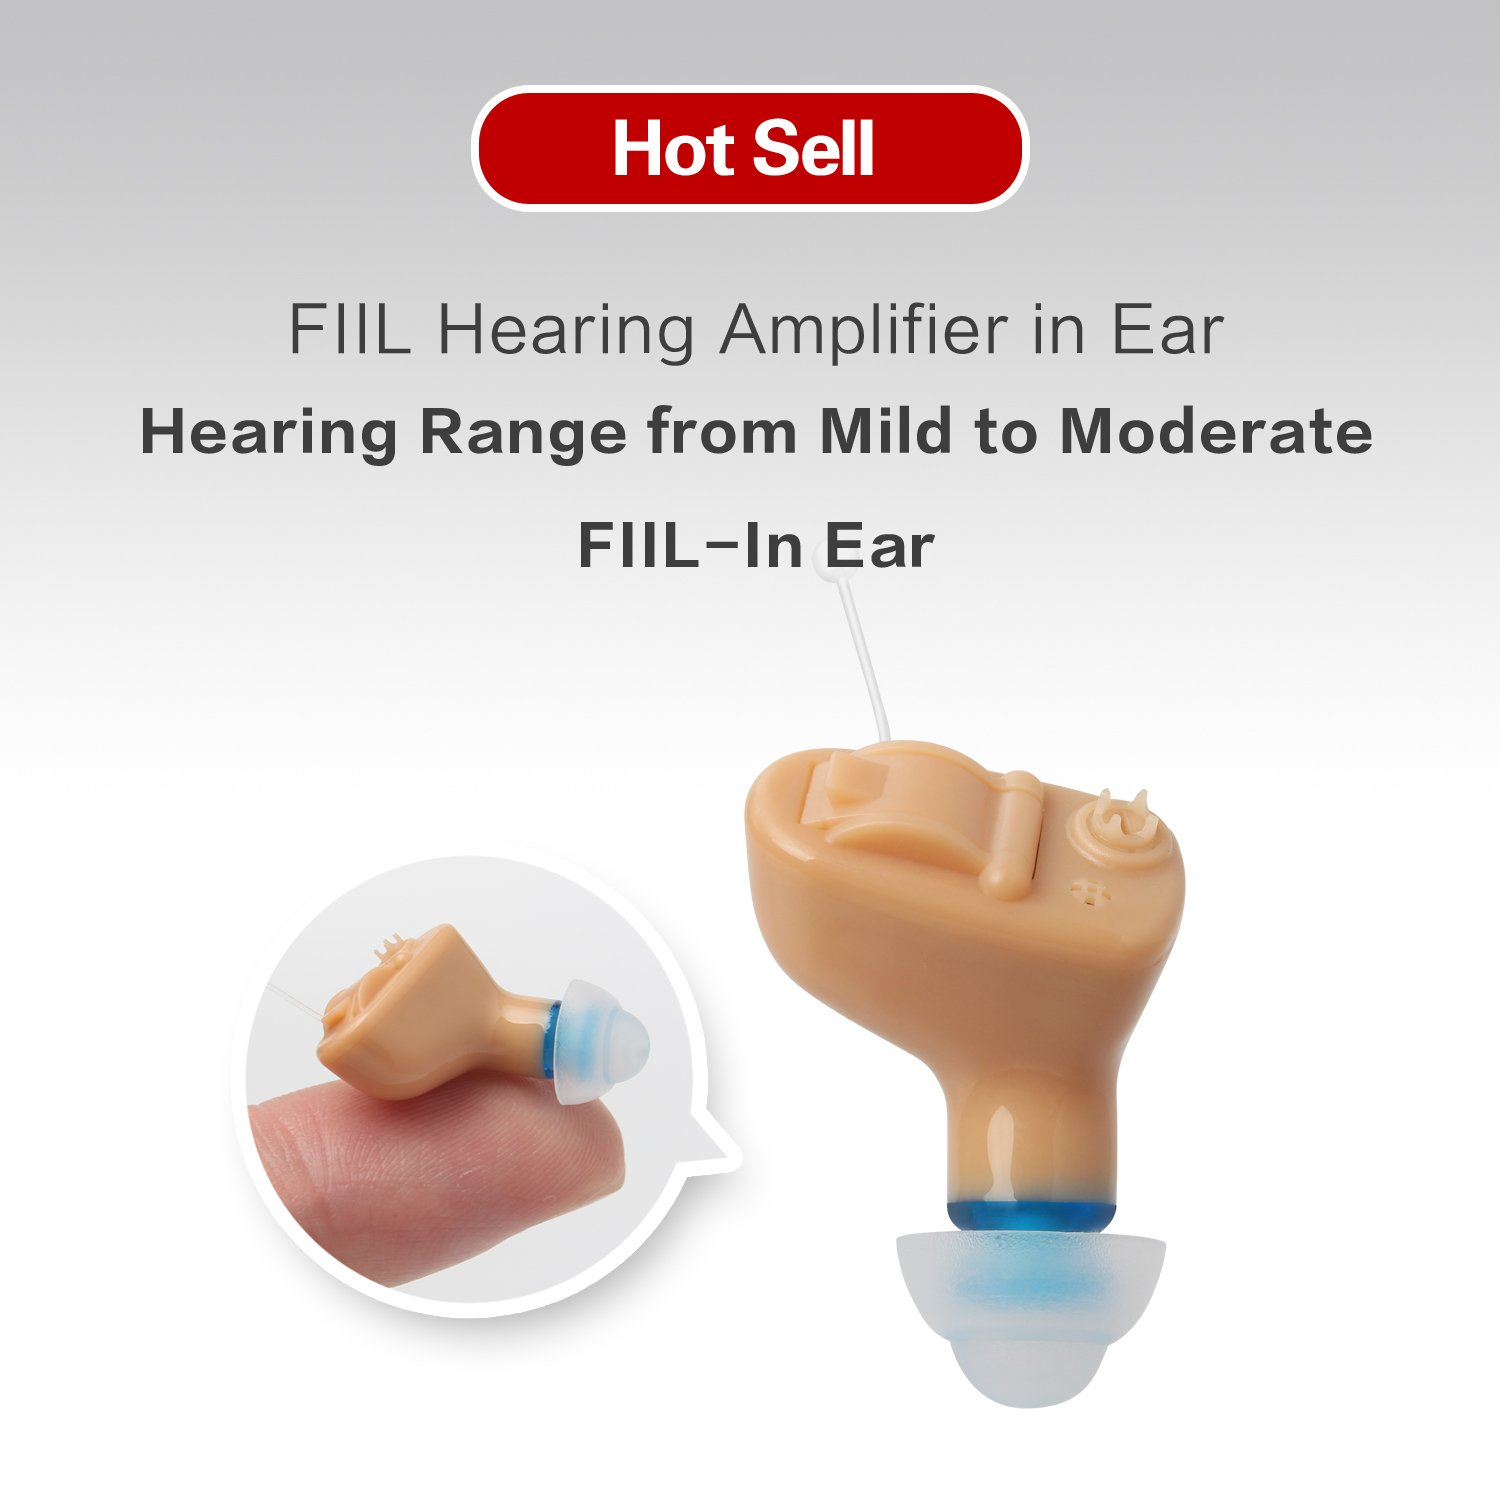 FIIL Hearing Amplifier in Ear Mini Sound Amplifier Battery A10 Voice Control Long Battery Life, Durable Design, Highly Advanced Mini Micro Processor Technology (Left)